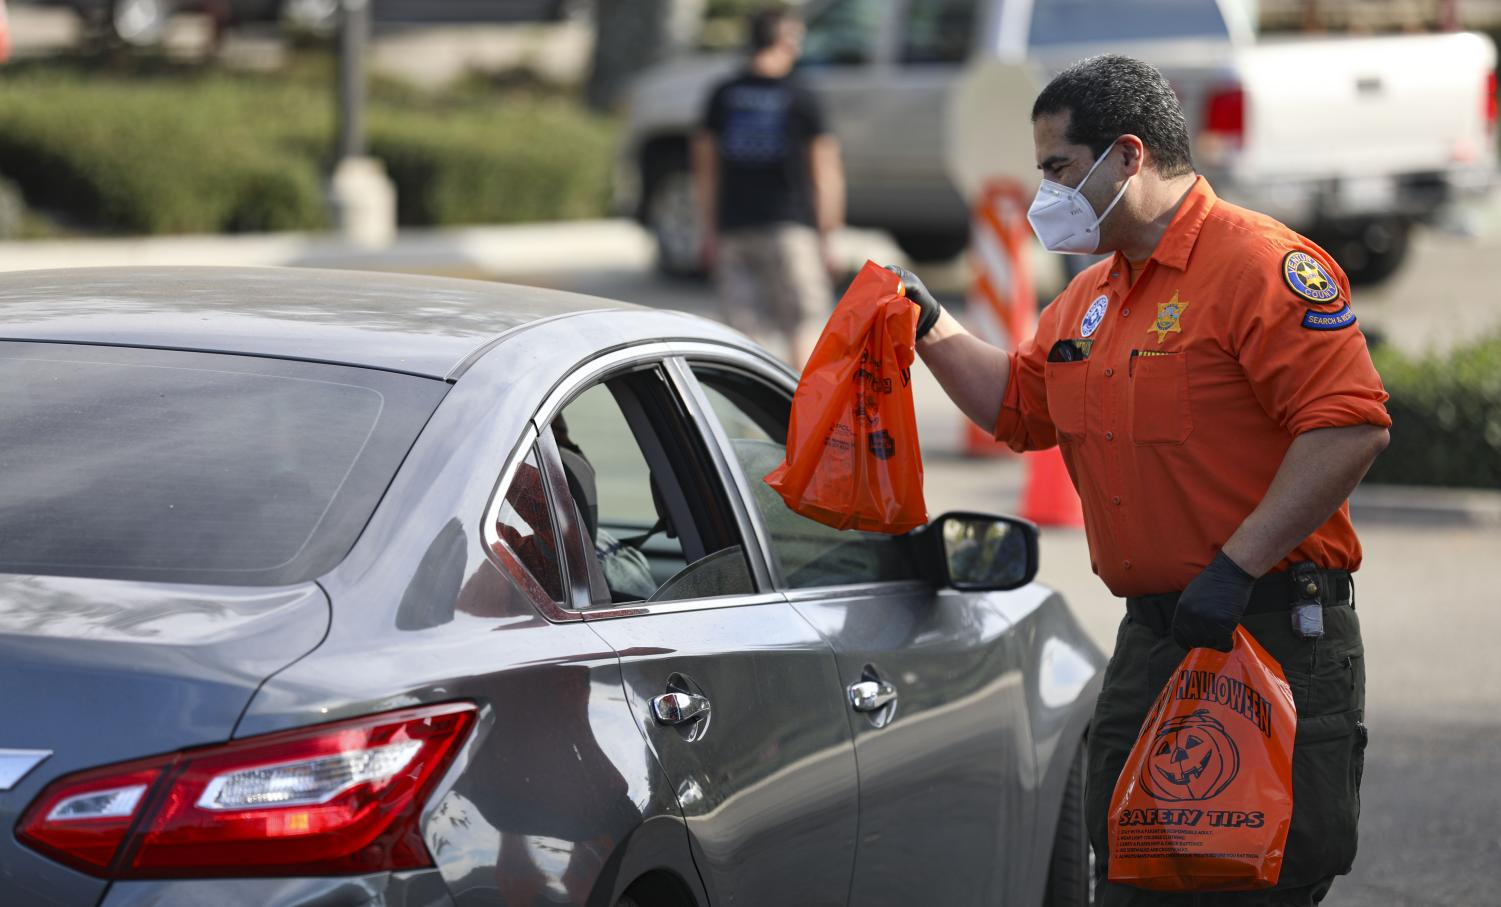 Bo Medina hands over bags of candy to trick or treaters during the